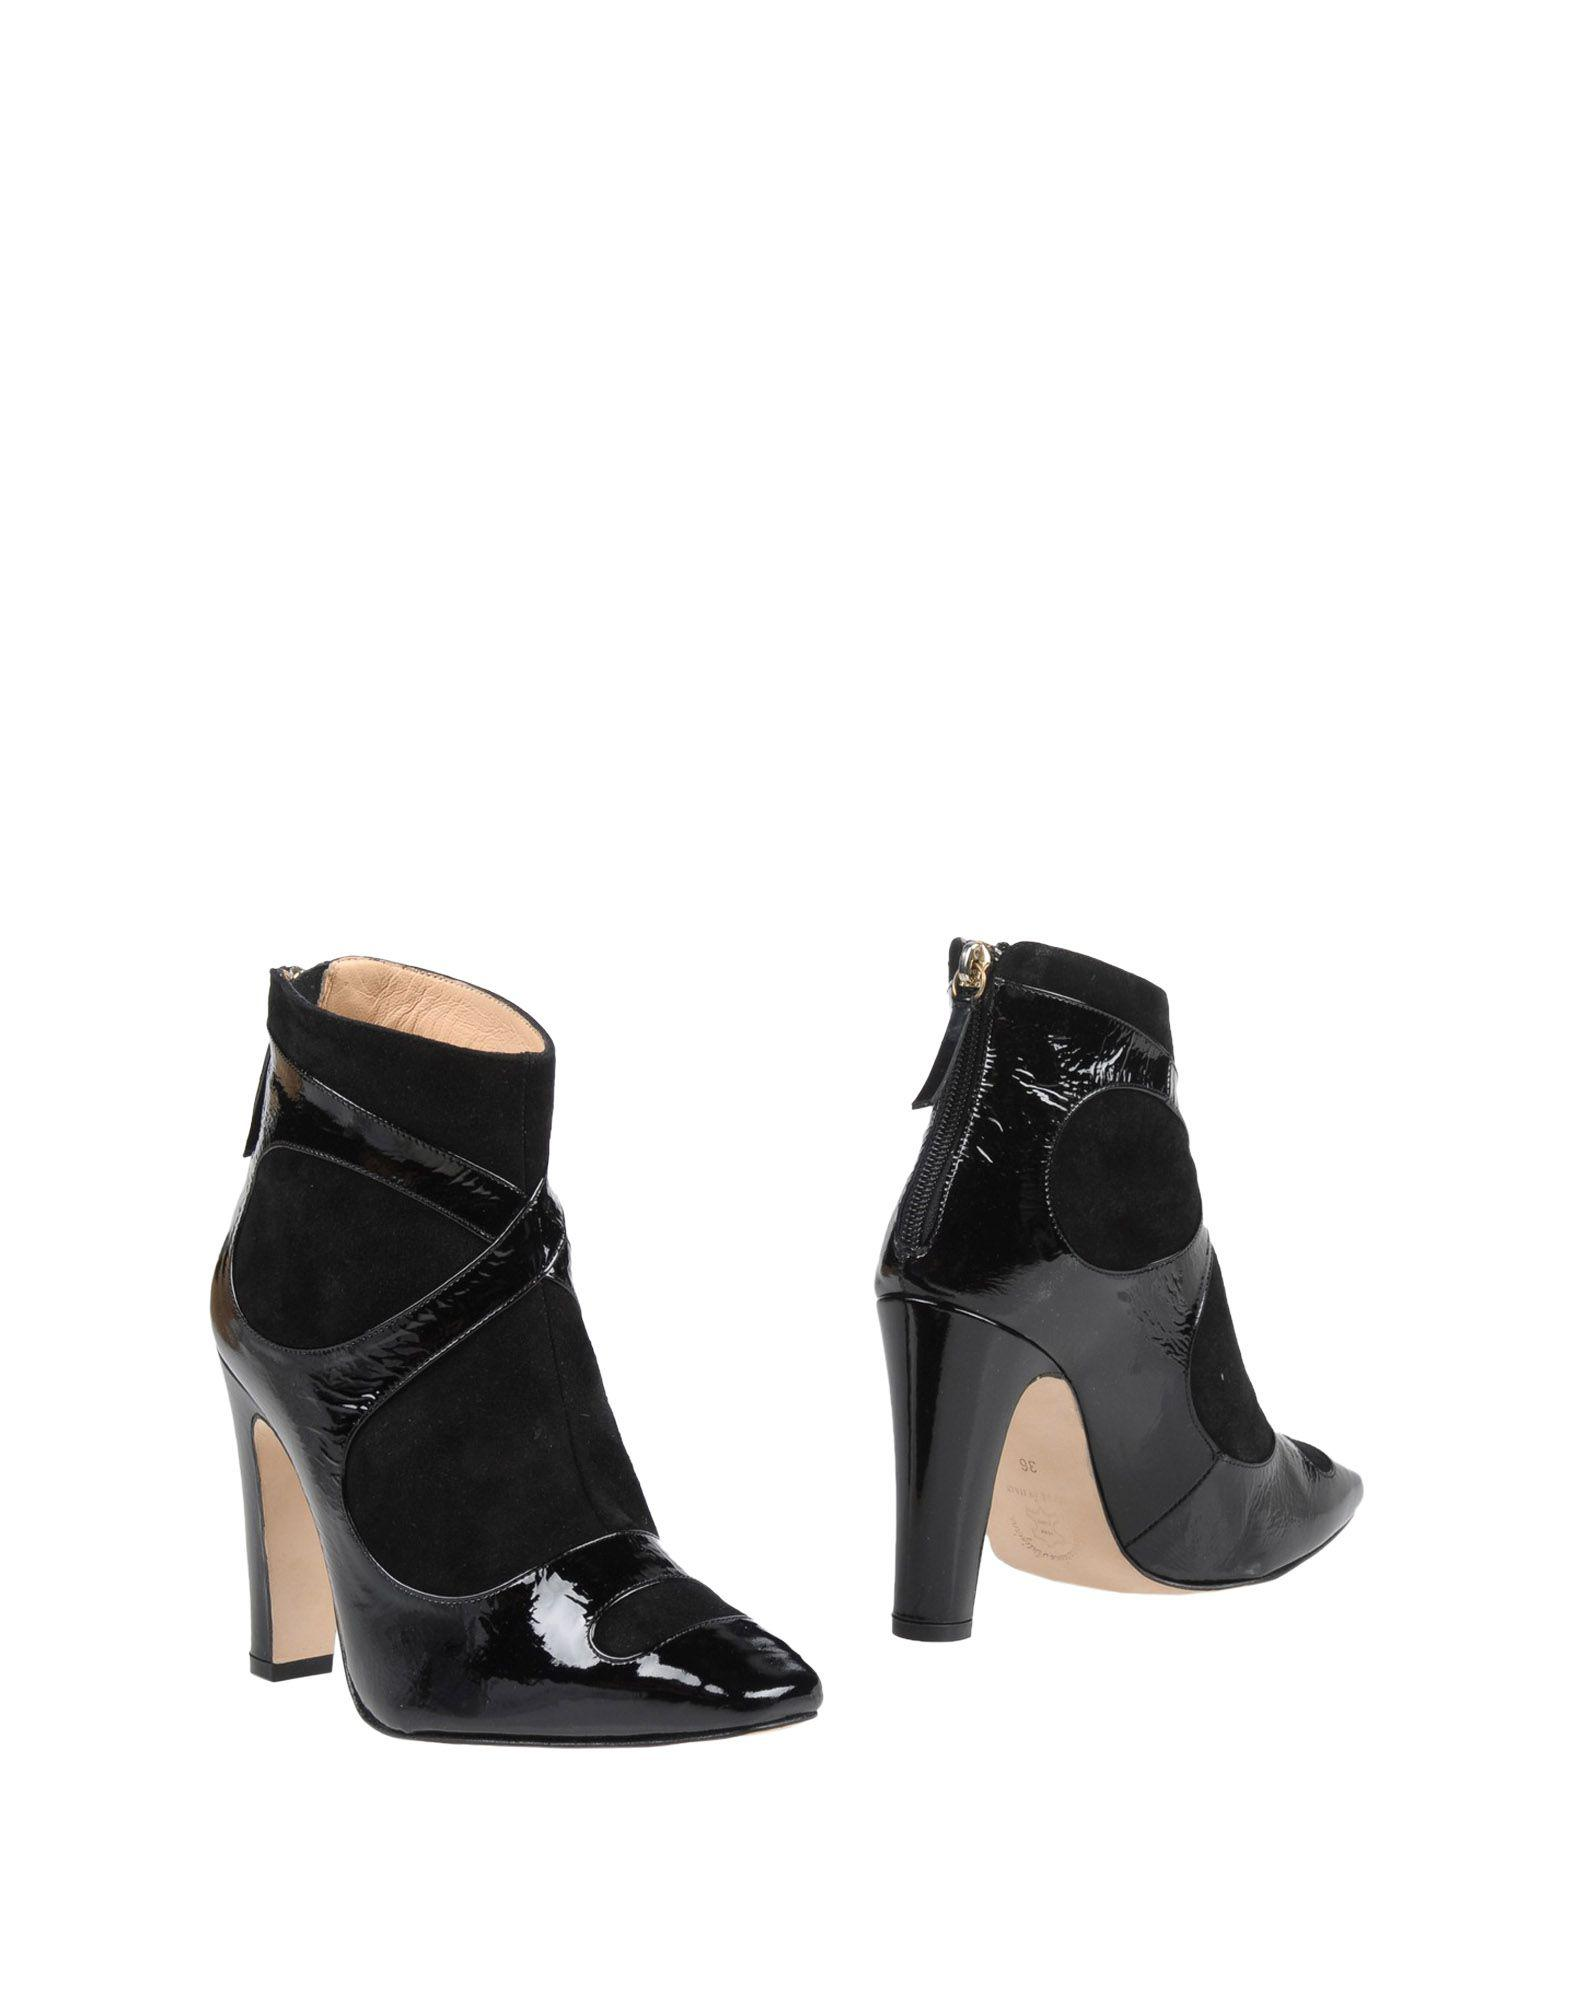 APOLOGIE Ankle boots clearance discount cheap sale under $60 cheap price from china 5LltrhX4